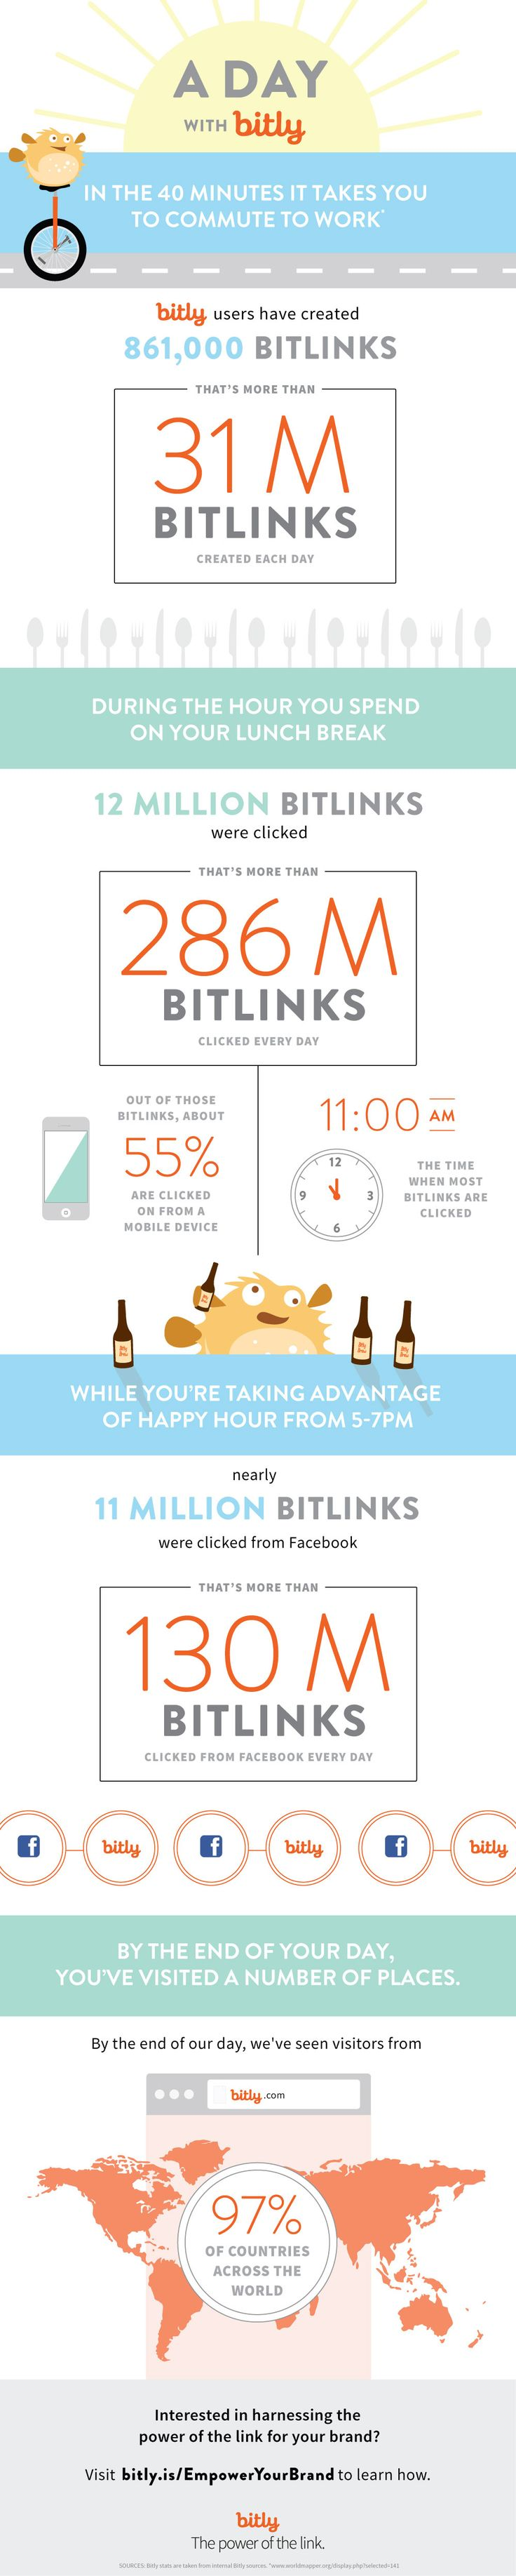 A Day in the Life of Bitly [INFOGRAPHIC]Infographic Socialmedia, Digital Marketing, Infografia Infographic, Bit Li Infografia, 24 Hour, Social Media, De Bit Li, Day, Infographic